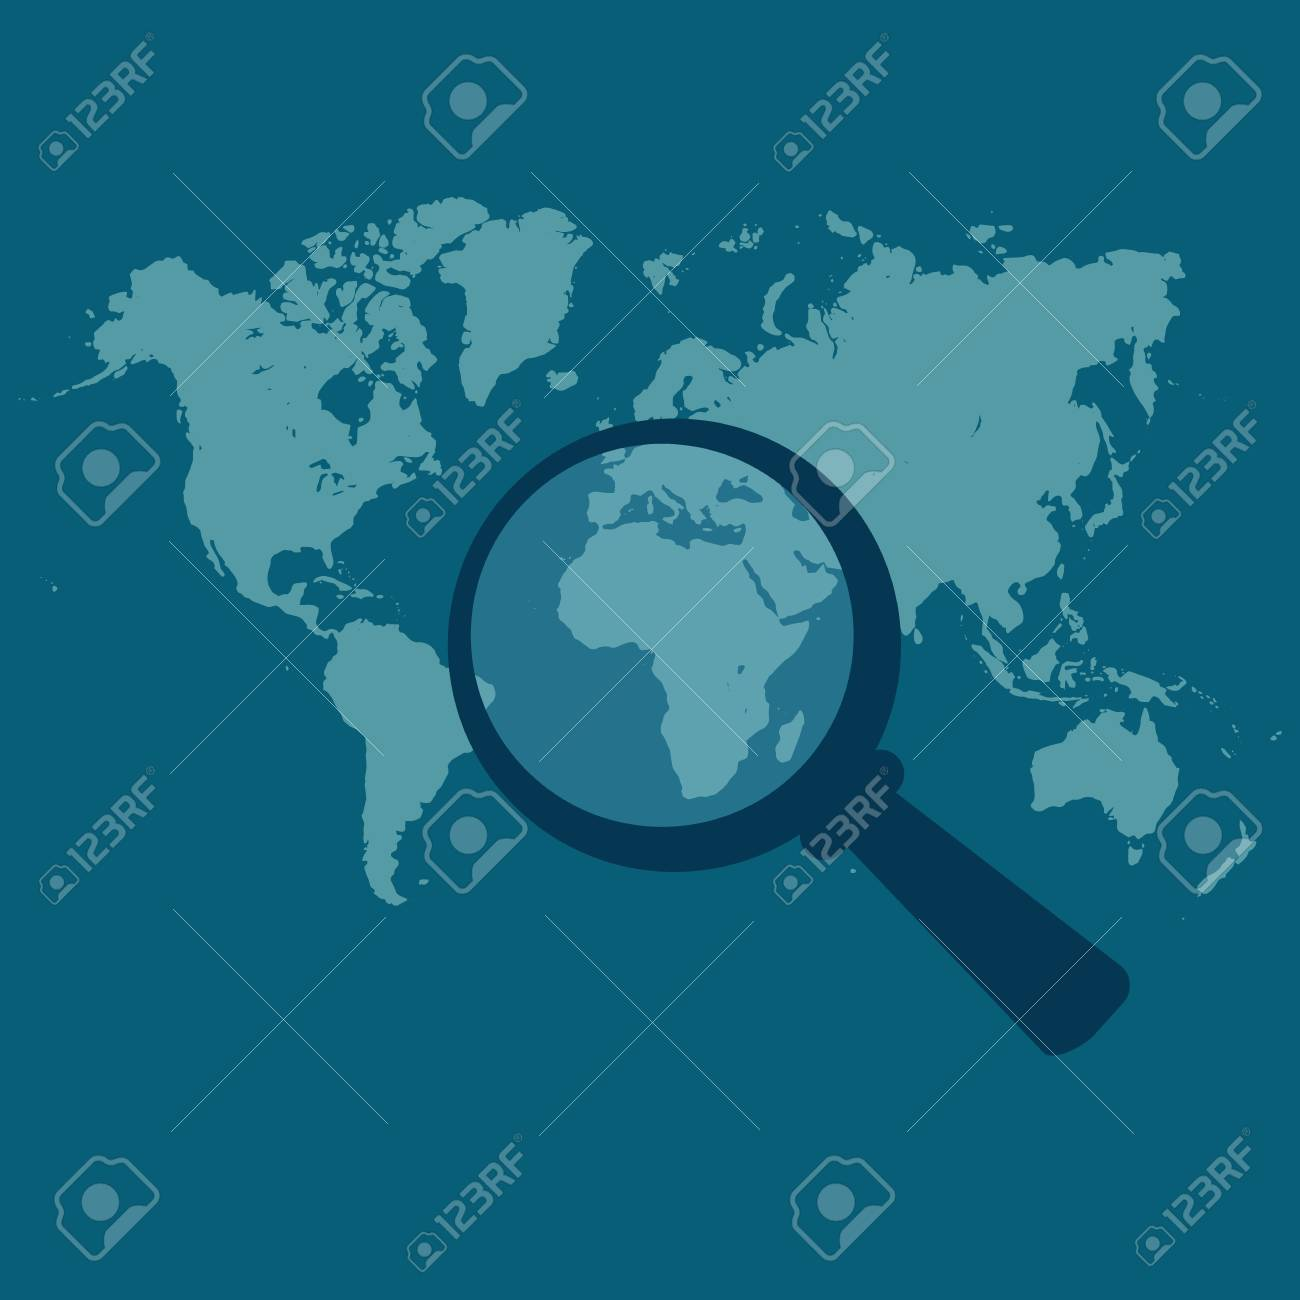 World map magnified vector illustration in flat design for vector world map magnified vector illustration in flat design for web sites infographic design gumiabroncs Gallery